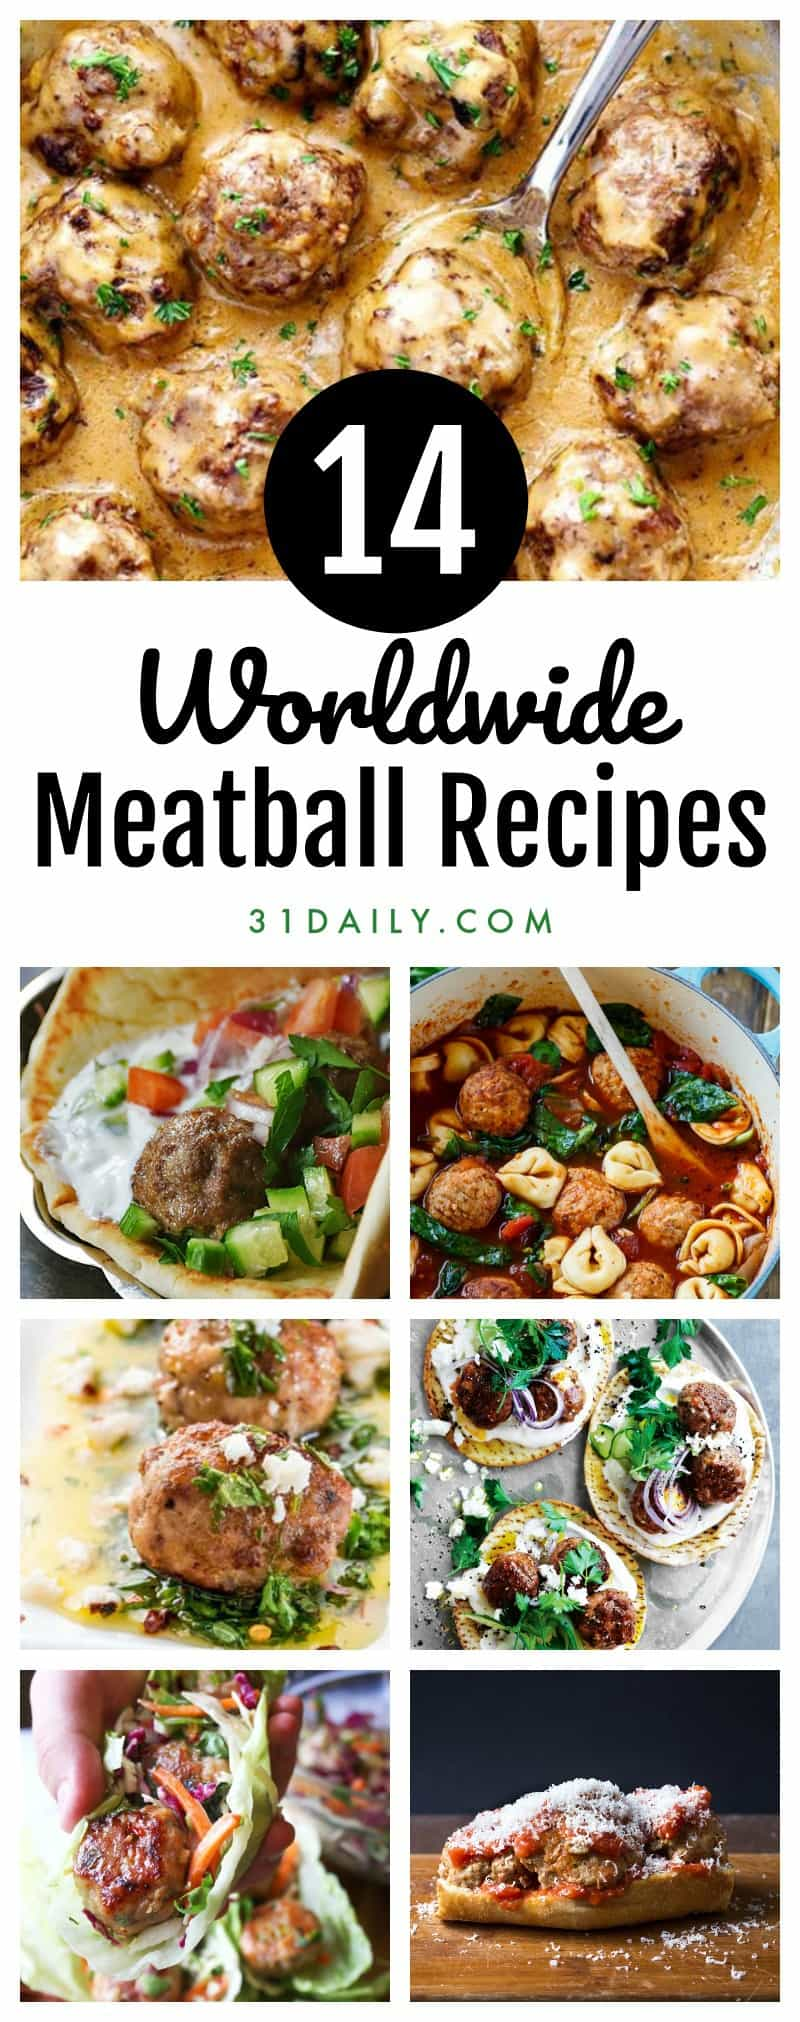 14 Tempting Meatball Recipes that Transcend Cultures | 31Daily.com